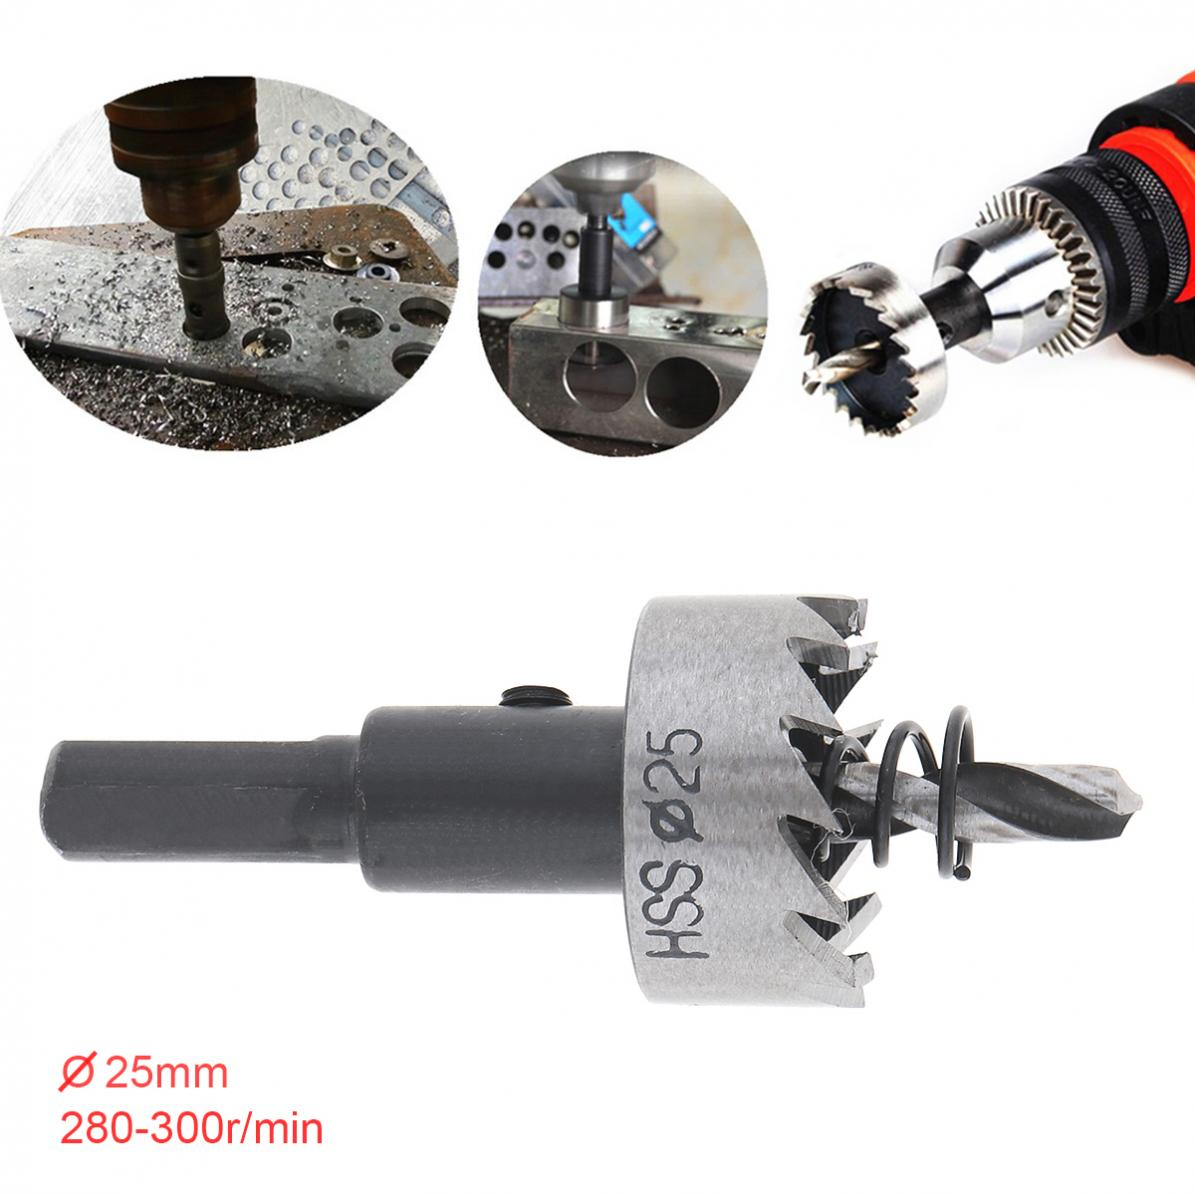 25MM HSS Drill Bit Hole Saw Stainless Steel Metal Alloy Drilling Hole Opener Tool For Metal / Alloy / Iron / Stainless Cutting